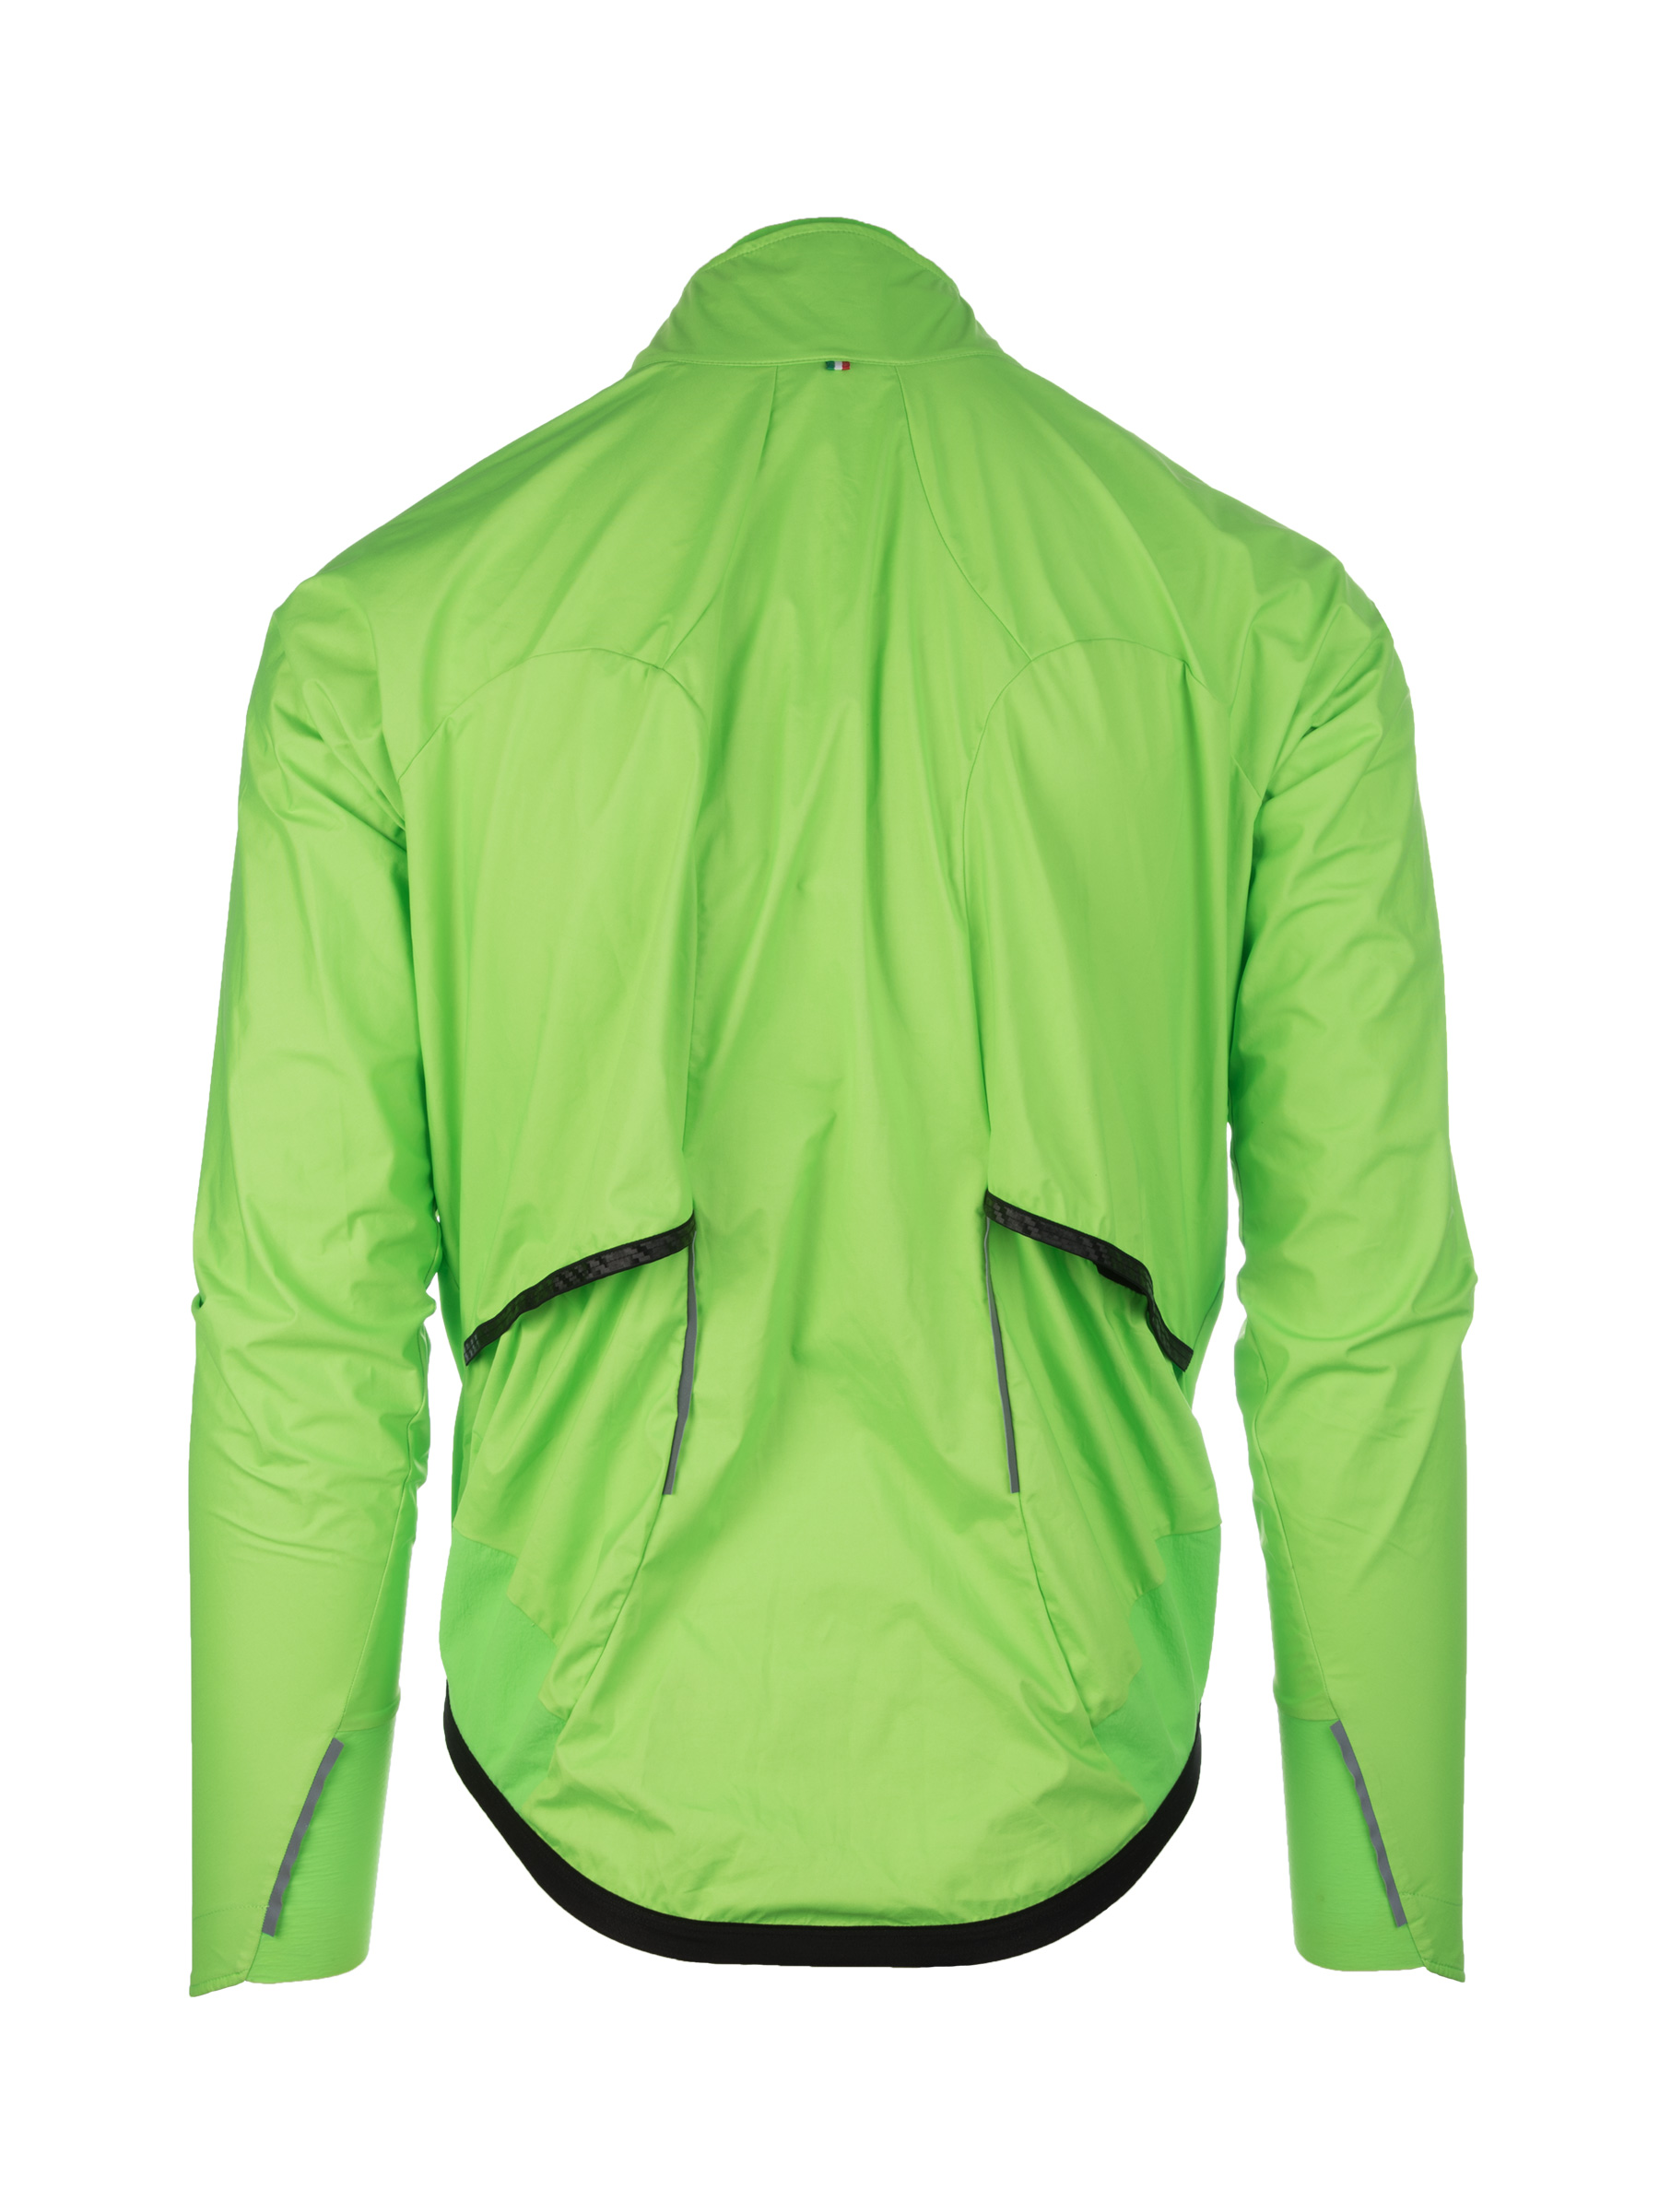 Giacca R. Shell Protection Verde Fluo